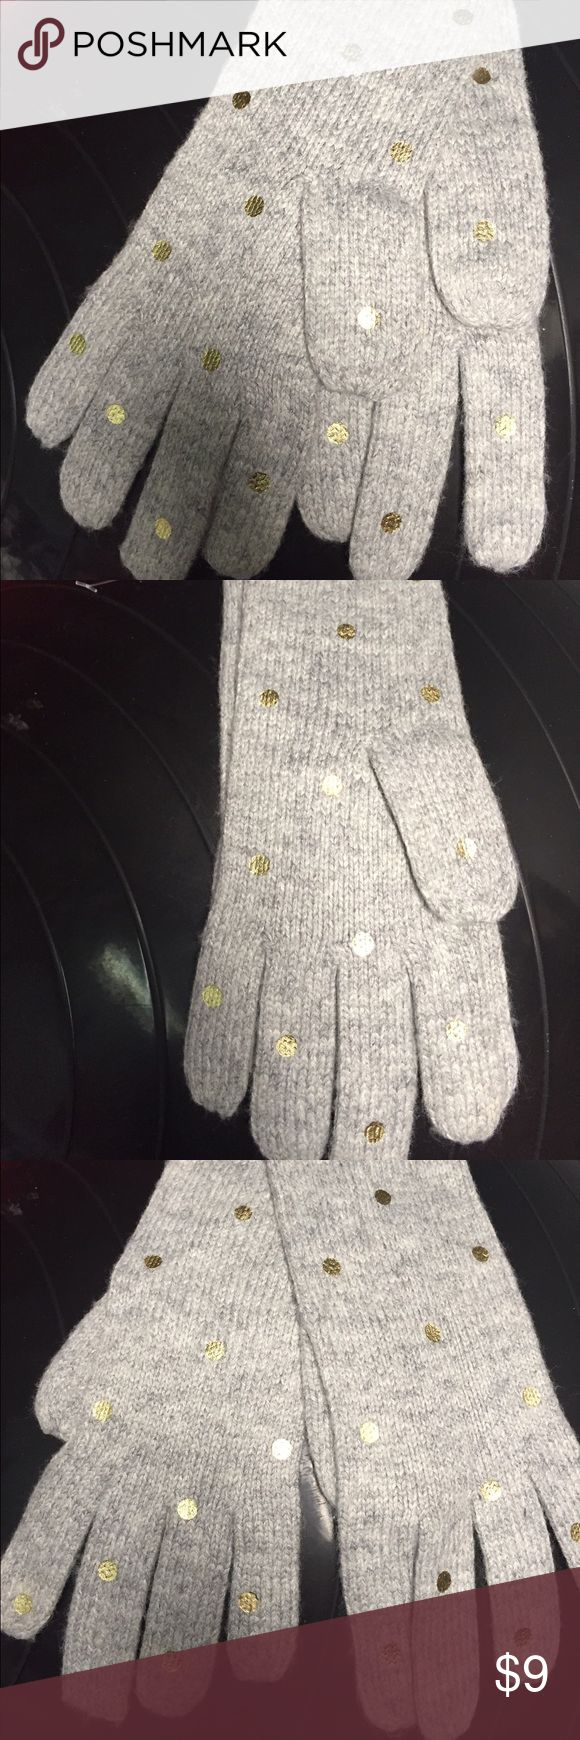 Gray gloves with gold polka dots New, never used gray gloves with gold polka dots Old Navy Accessories Gloves & Mittens